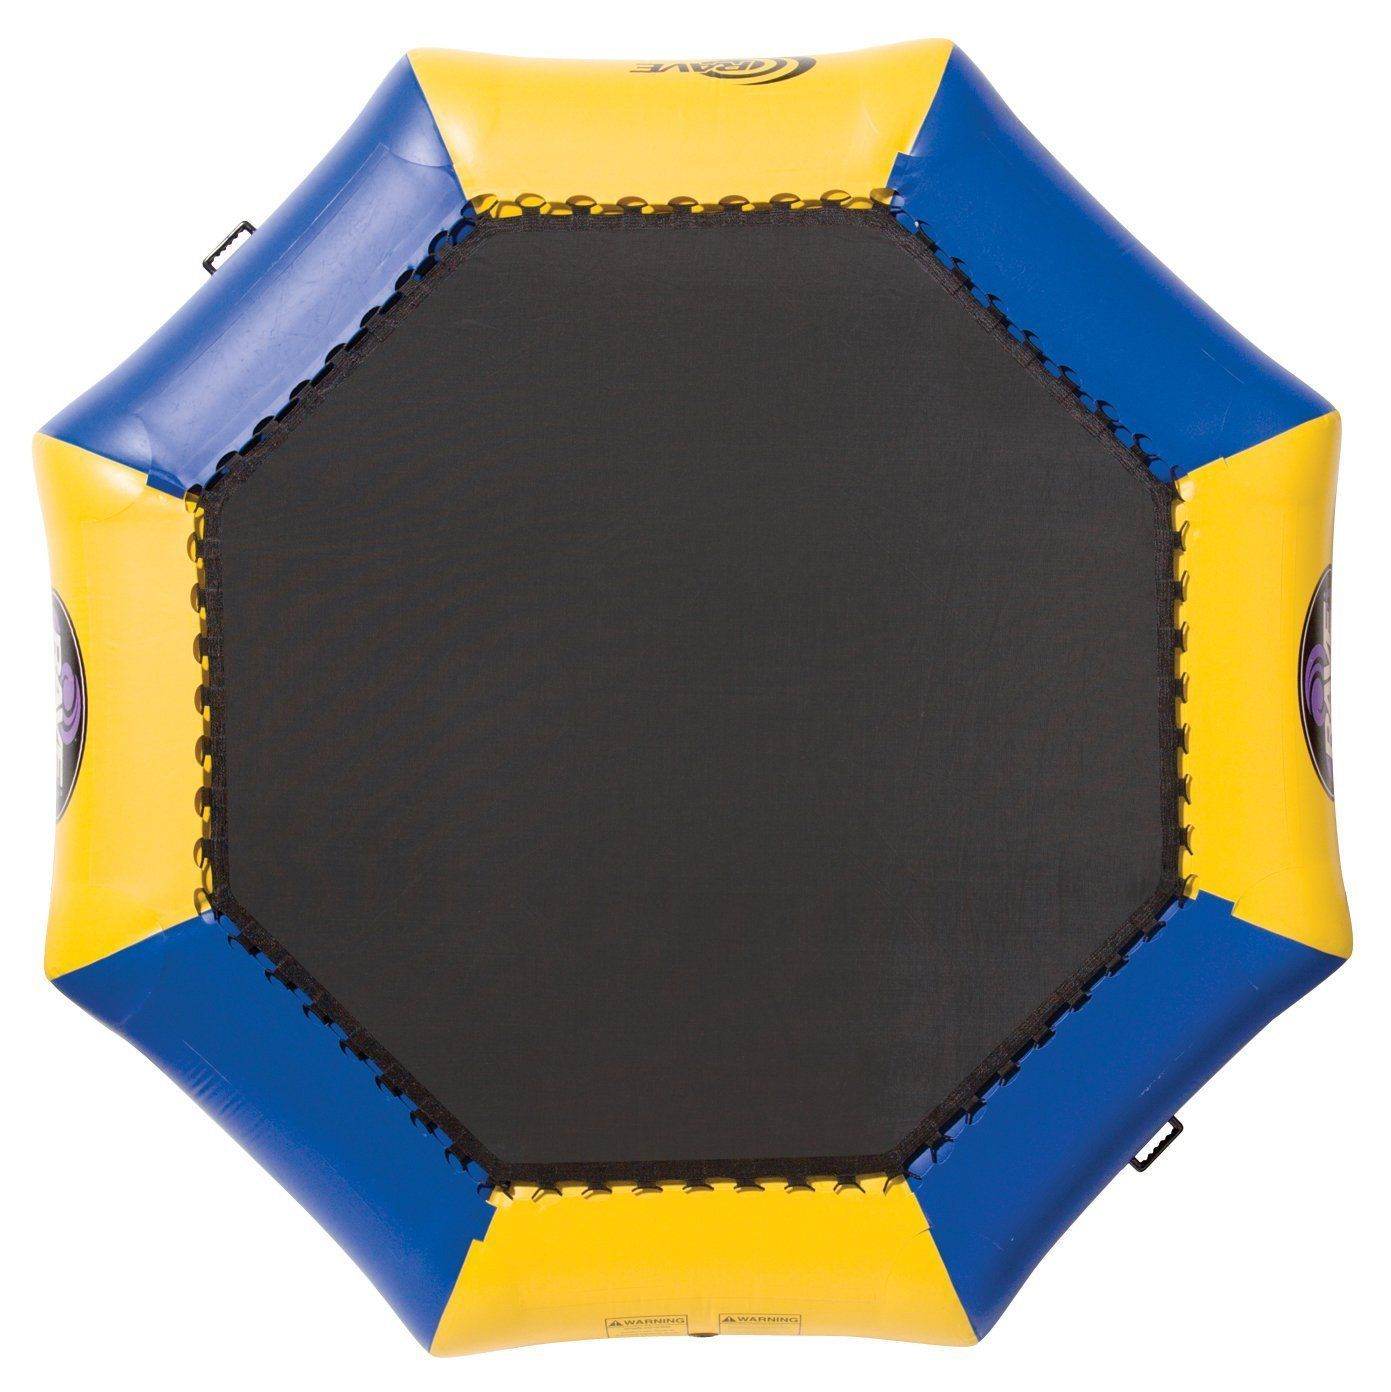 Trampoline Parts Center Coupon Code: RAVE Sports Bongo Water Bouncer Trampoline Water Lake Pool